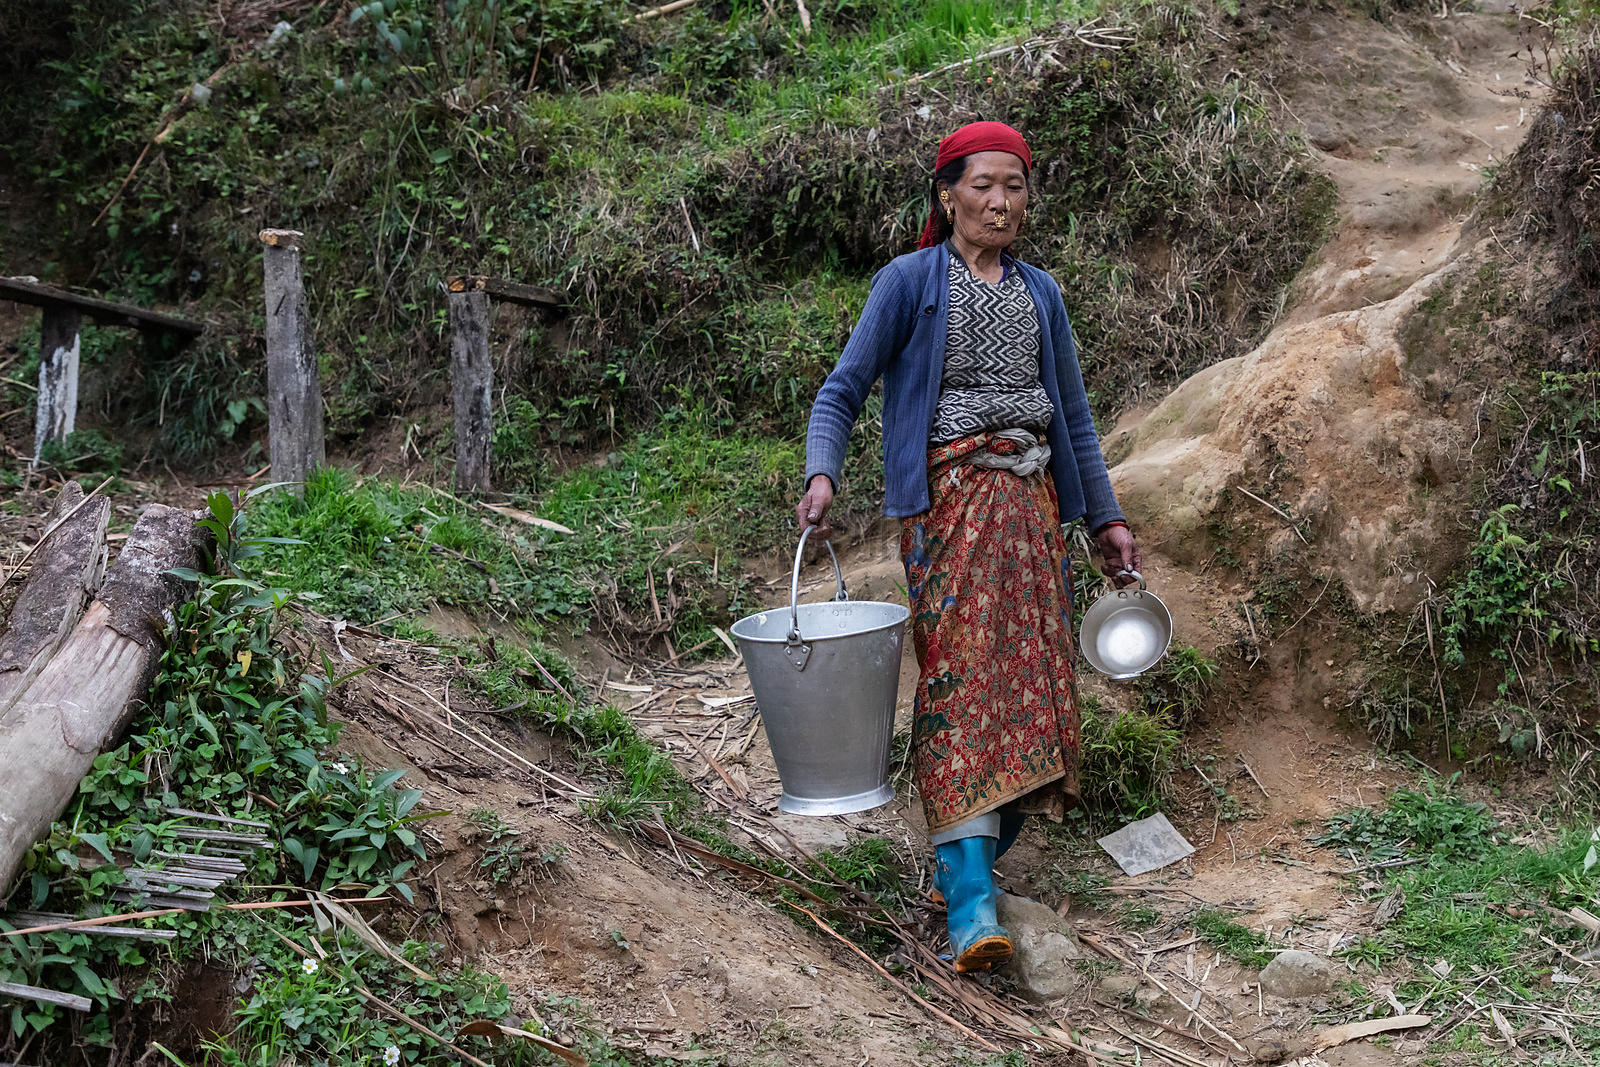 Portrait of Rash Maya Limboo (67) Carrying a Milk Pail